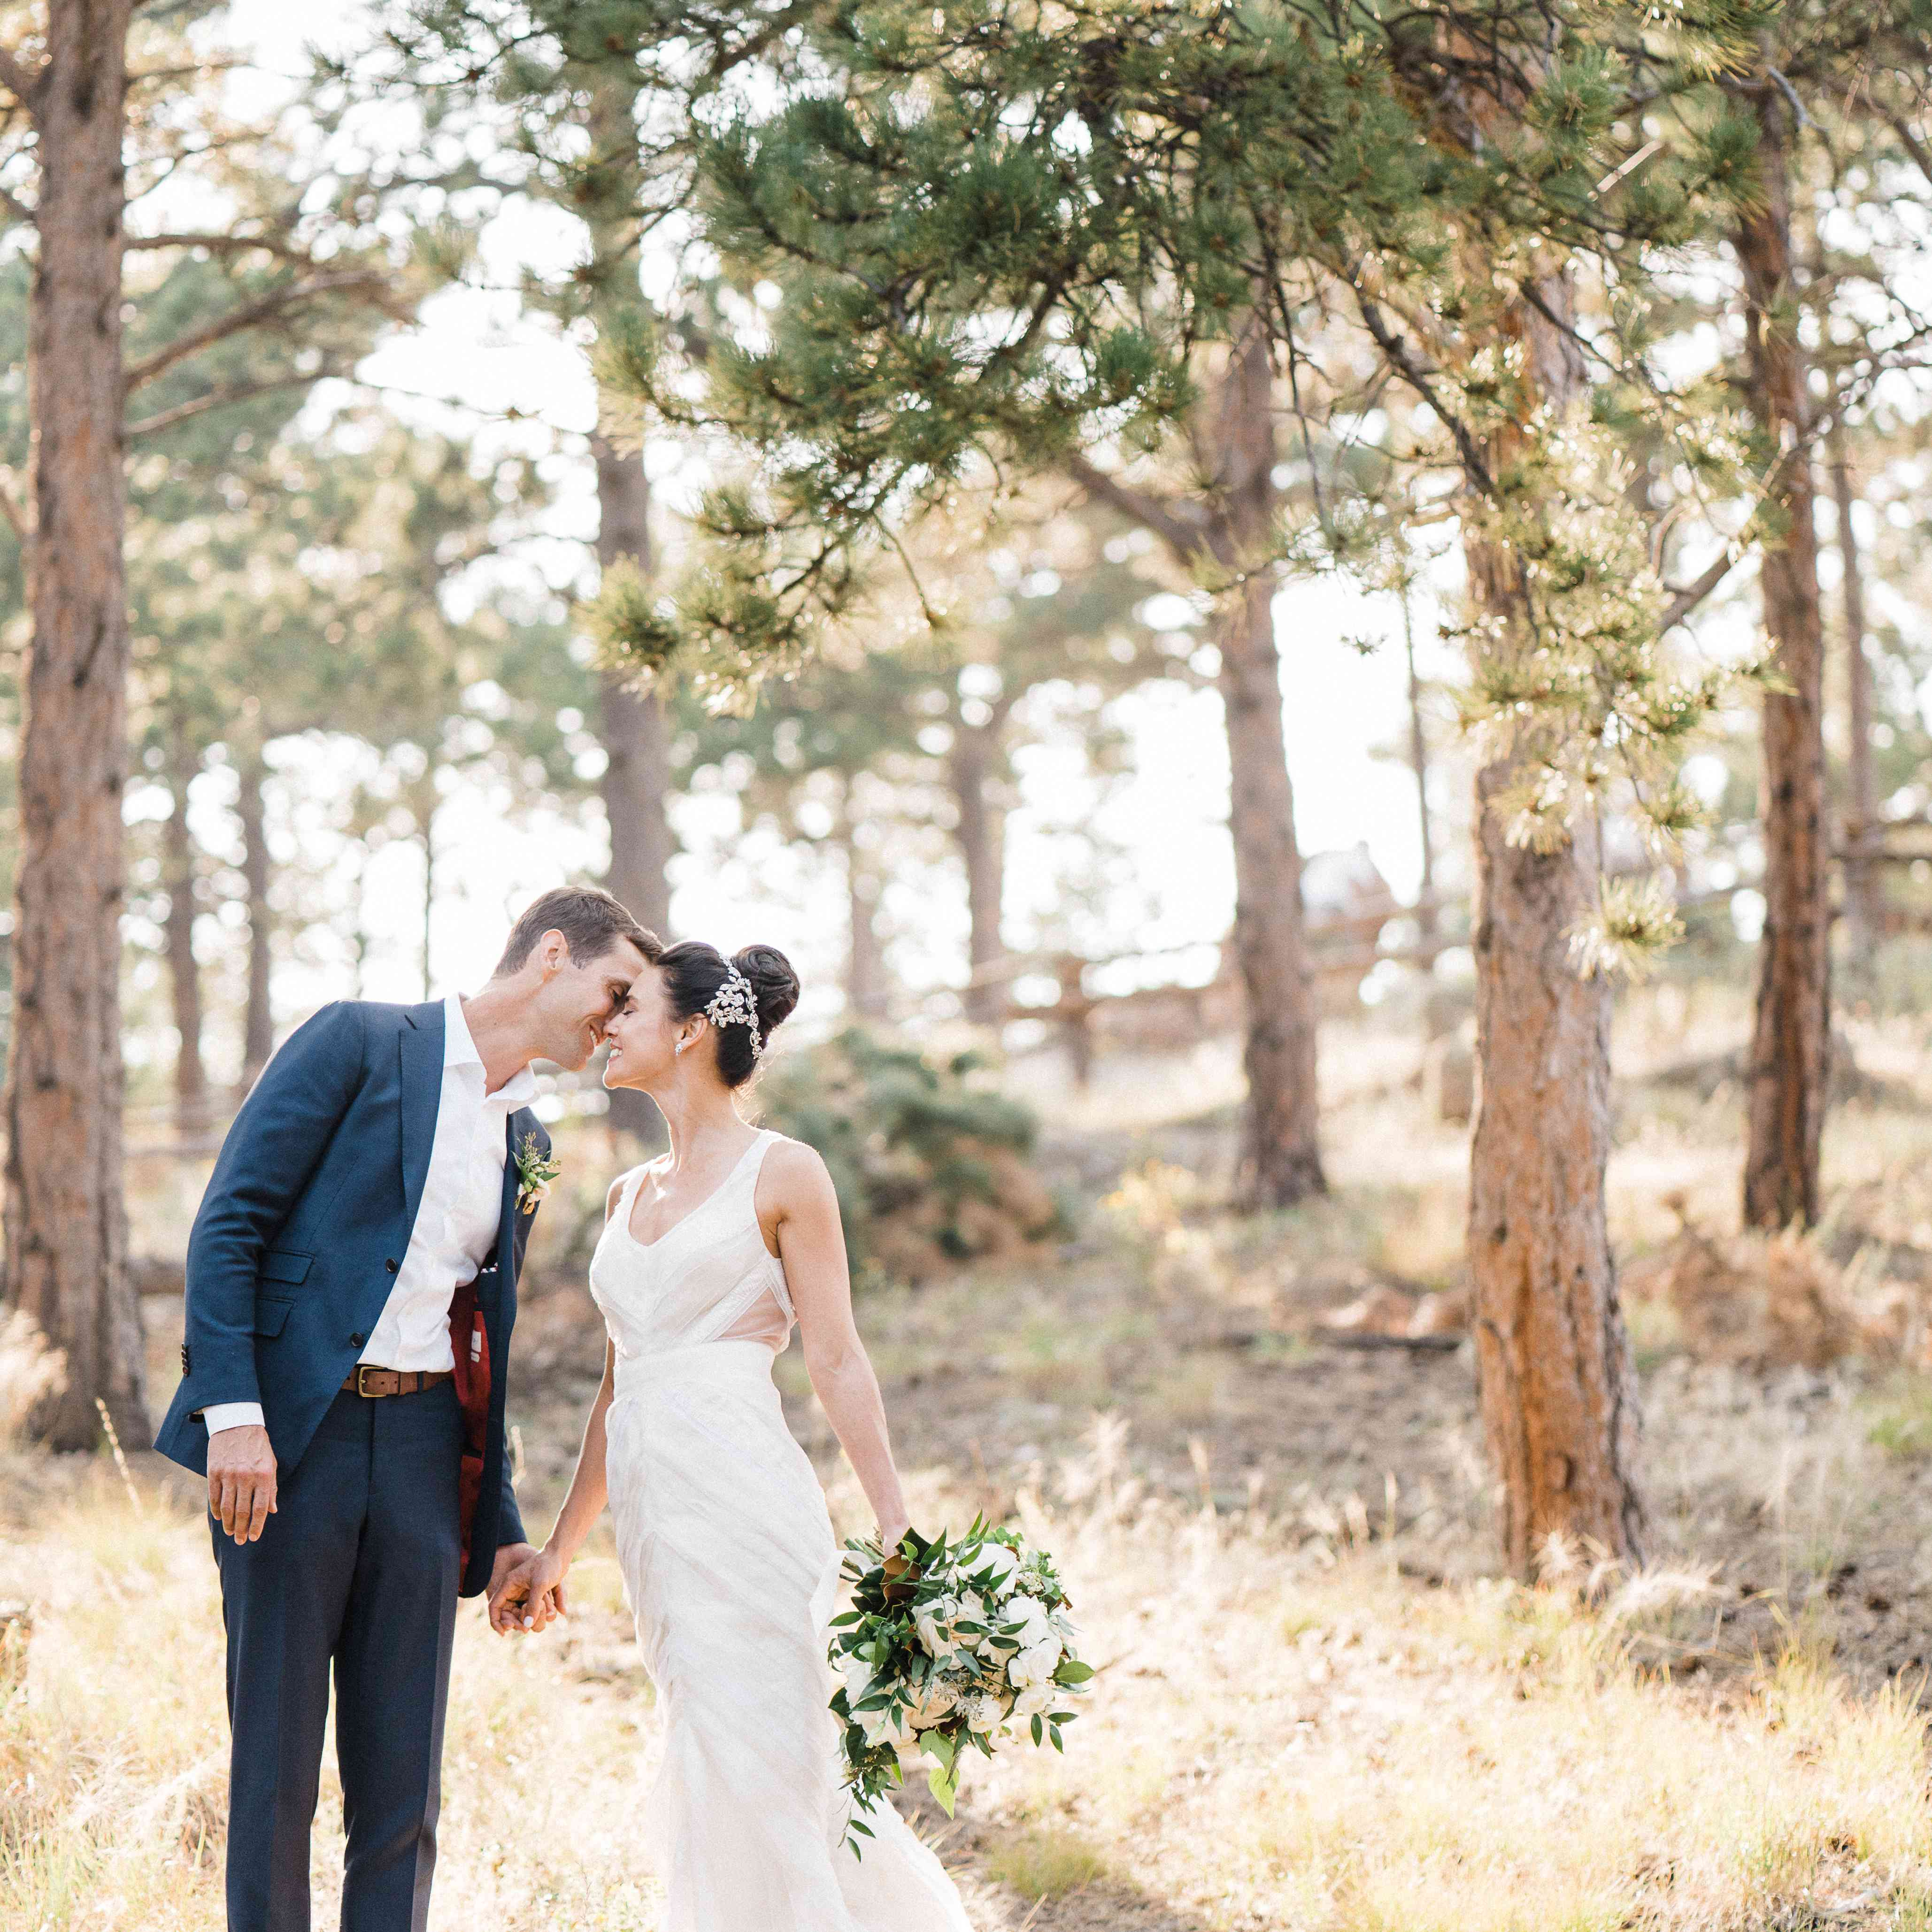 <p>Bride and groom in forest</p><br><br>